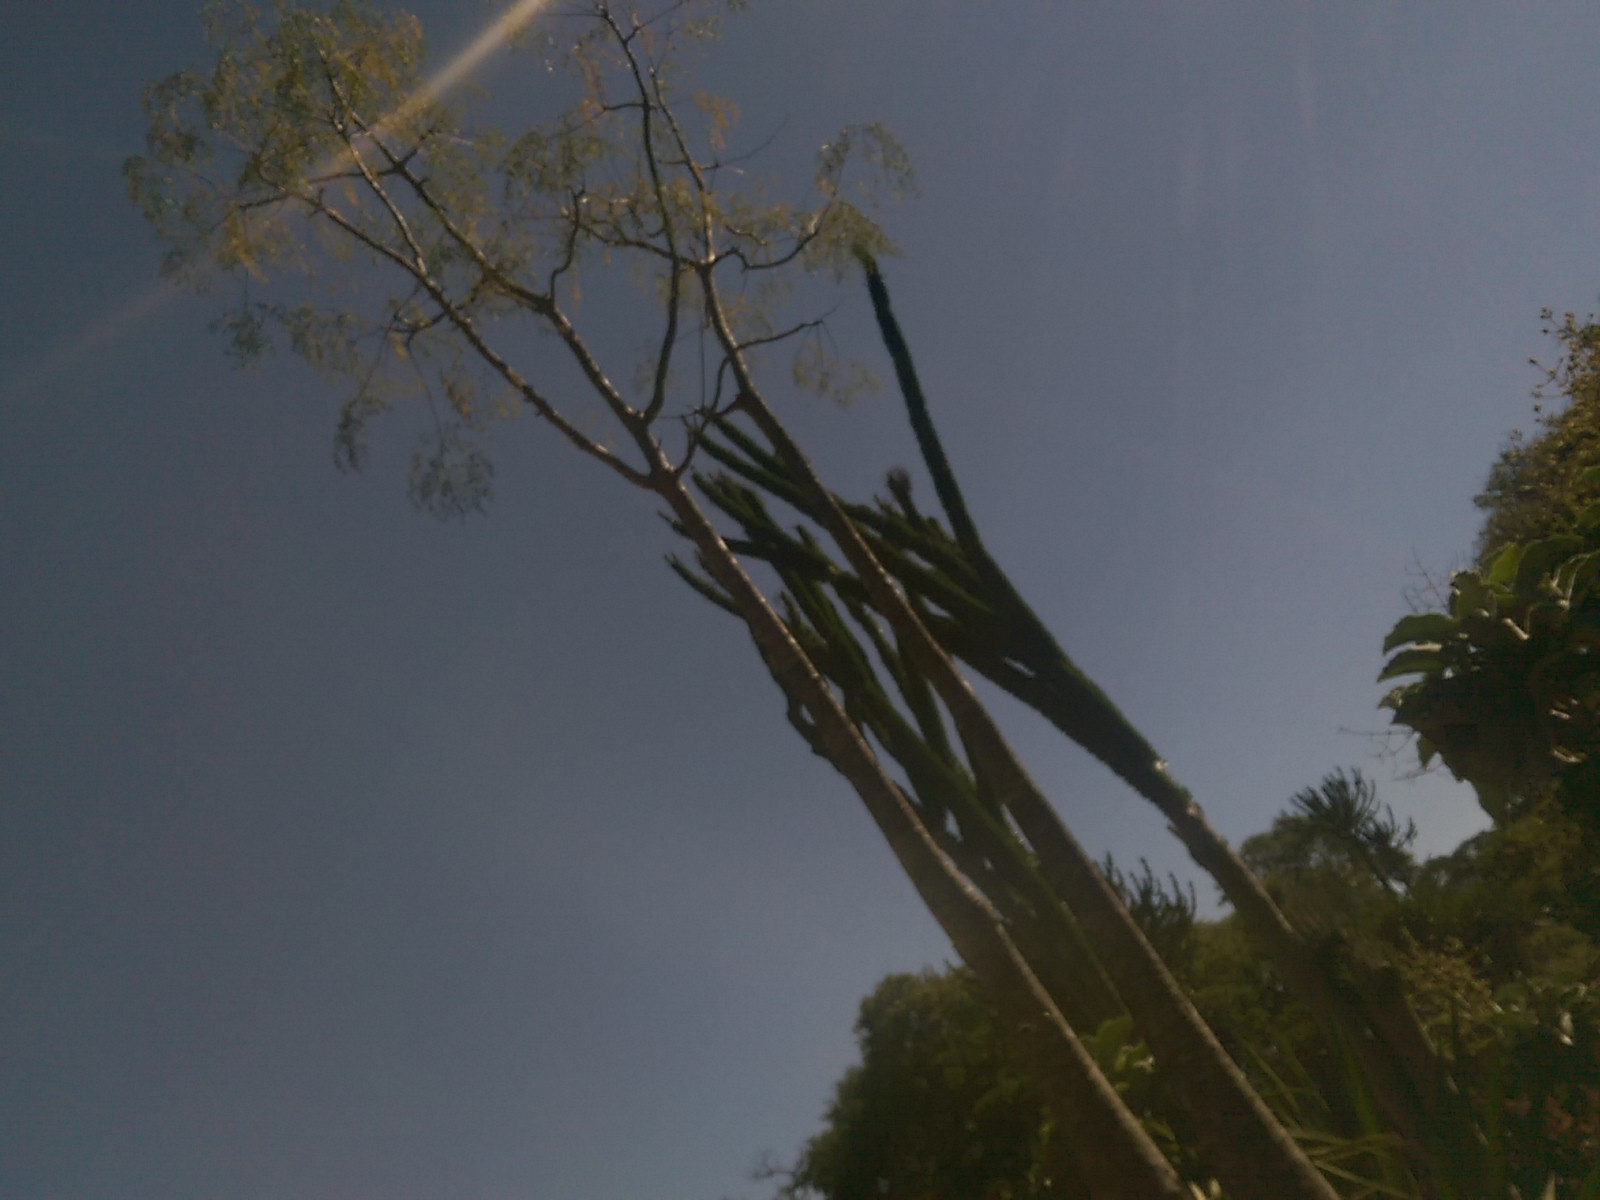 Tall narrow cactii and trees against a blue sky